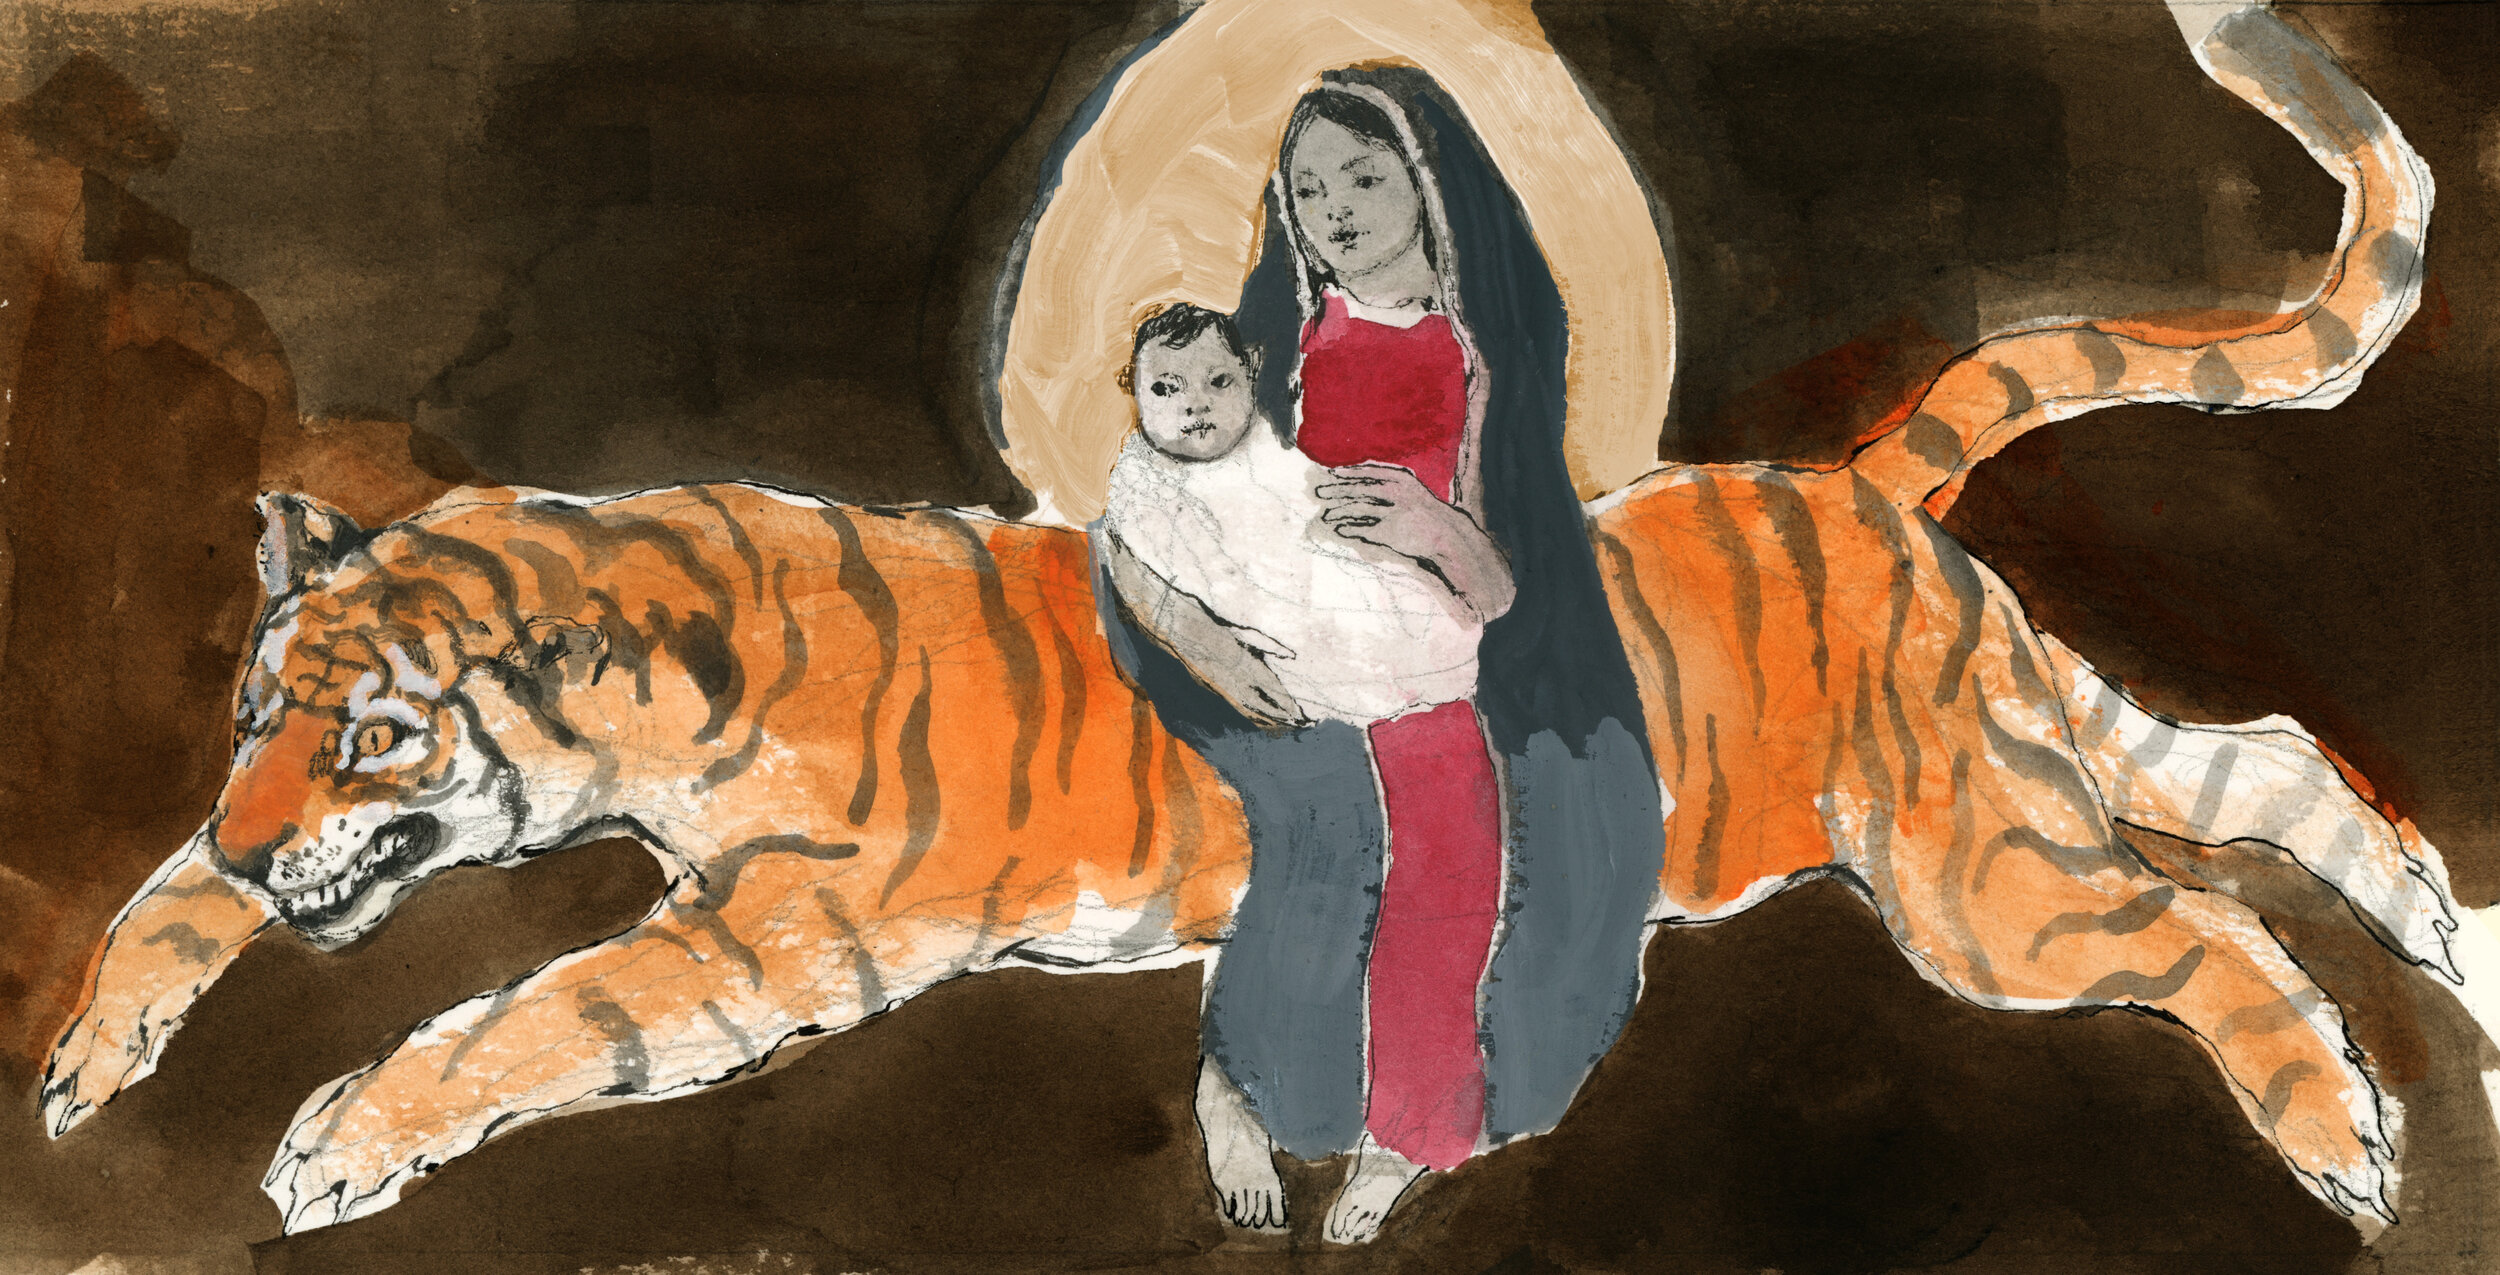 For  A Separate State  by Nimmi Gowrinathan, which considers motherhood as a cultural commodity wielded in times of political crisis